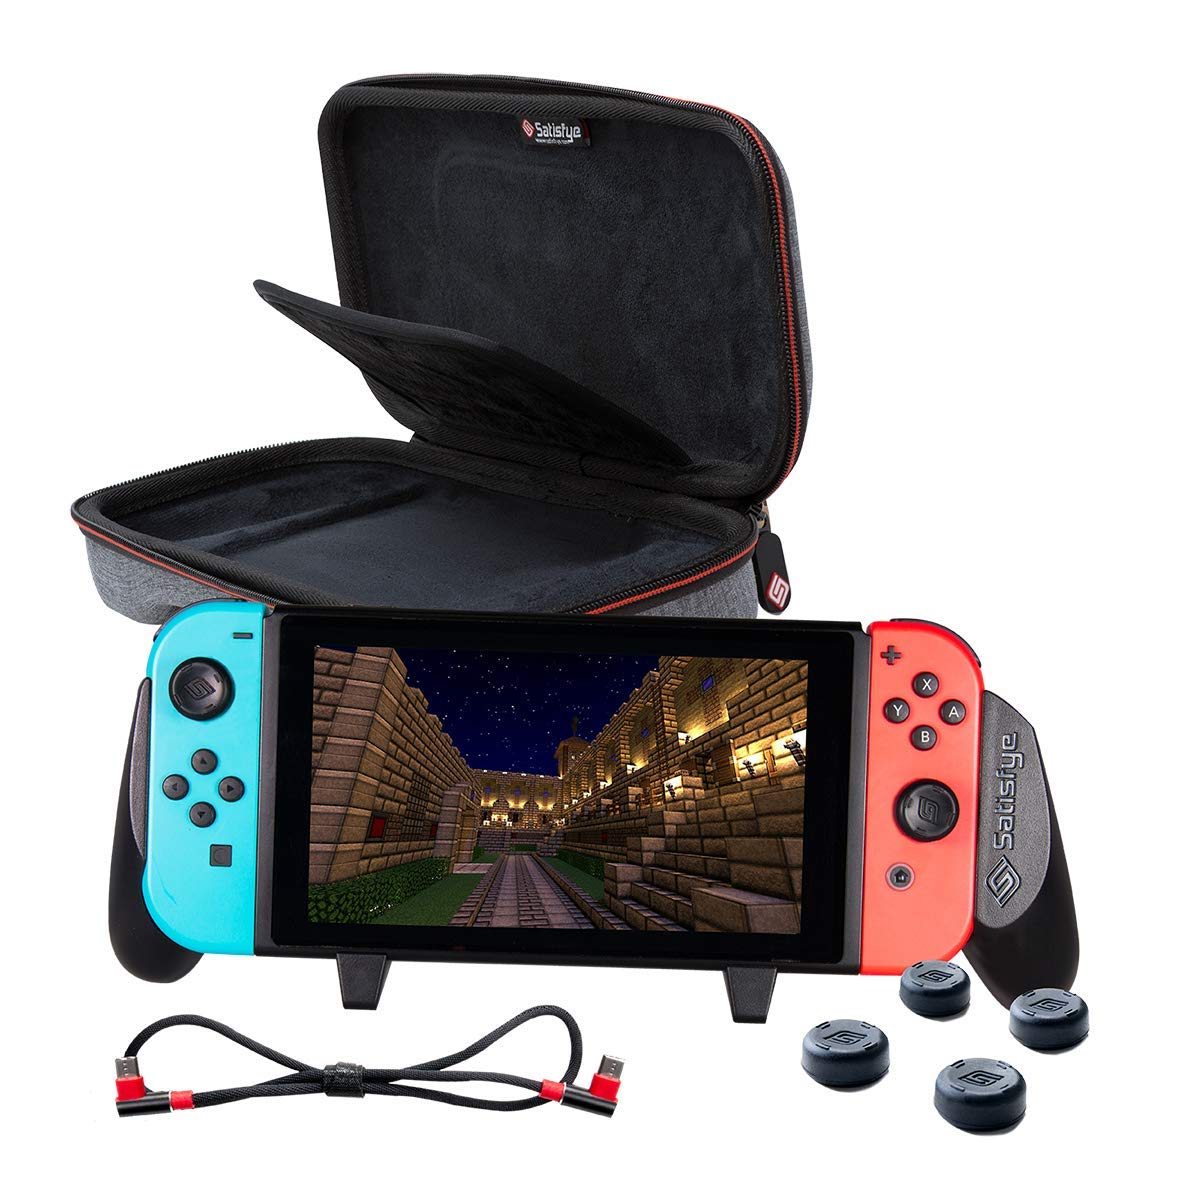 Satisfye - Accessories Bundle Compatible with Nintendo Switch - Slim Bundle, The Slim Grip Case includes: Switch Grip, Slim Case and a Low Profile USB C Charging Cable. BONUS: 4 Thumbsticks